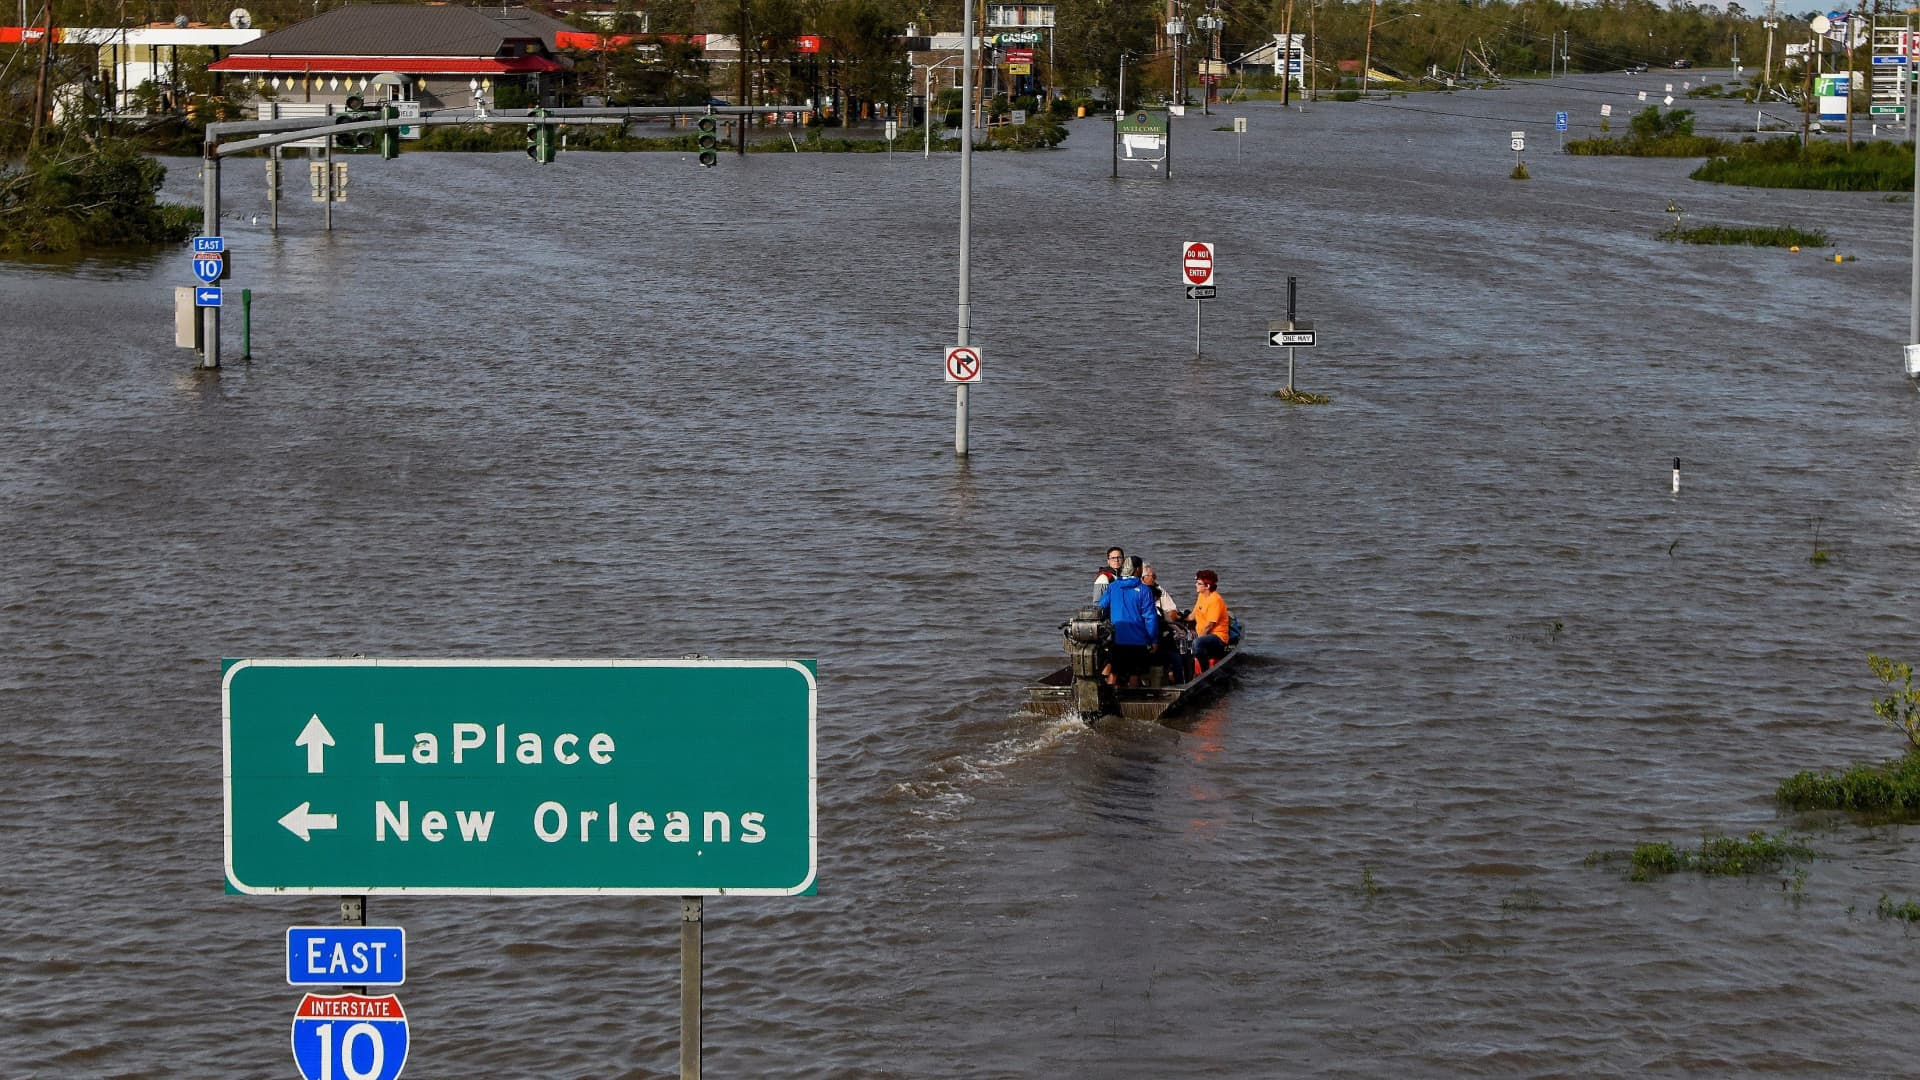 Highway 51 is flooded after Hurricane Ida struck LaPlace, Louisiana, August 30, 2021.